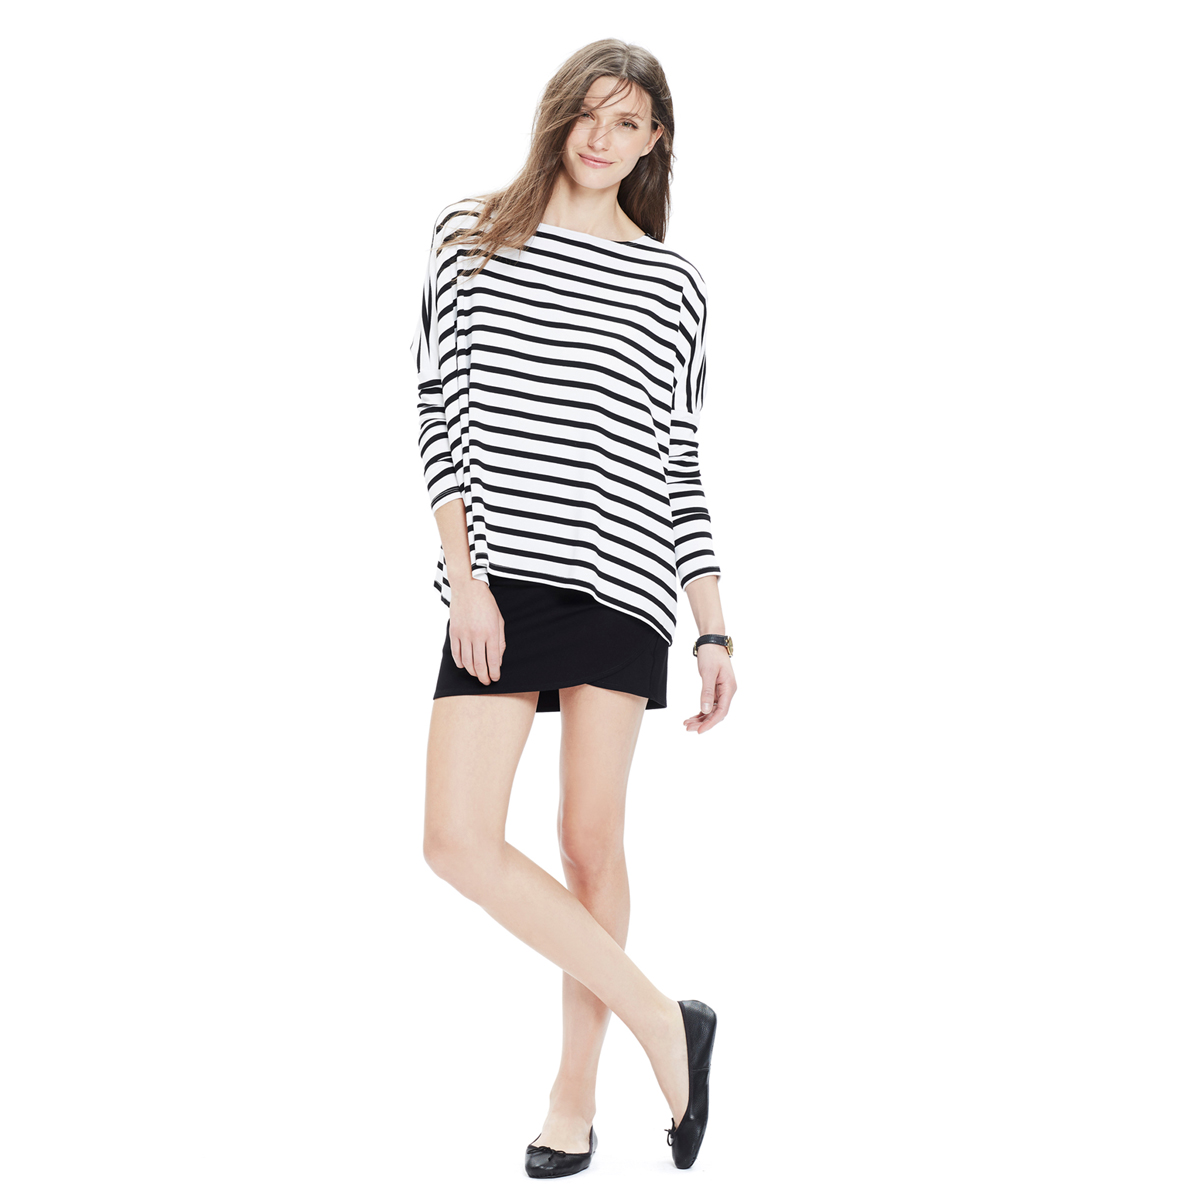 d9b54b1855a8e ... Tee can be paired with shorts, jeans, leggings or a dress, making it  not only comfortable – but one of your go-to items for day to day pregnancy  style.